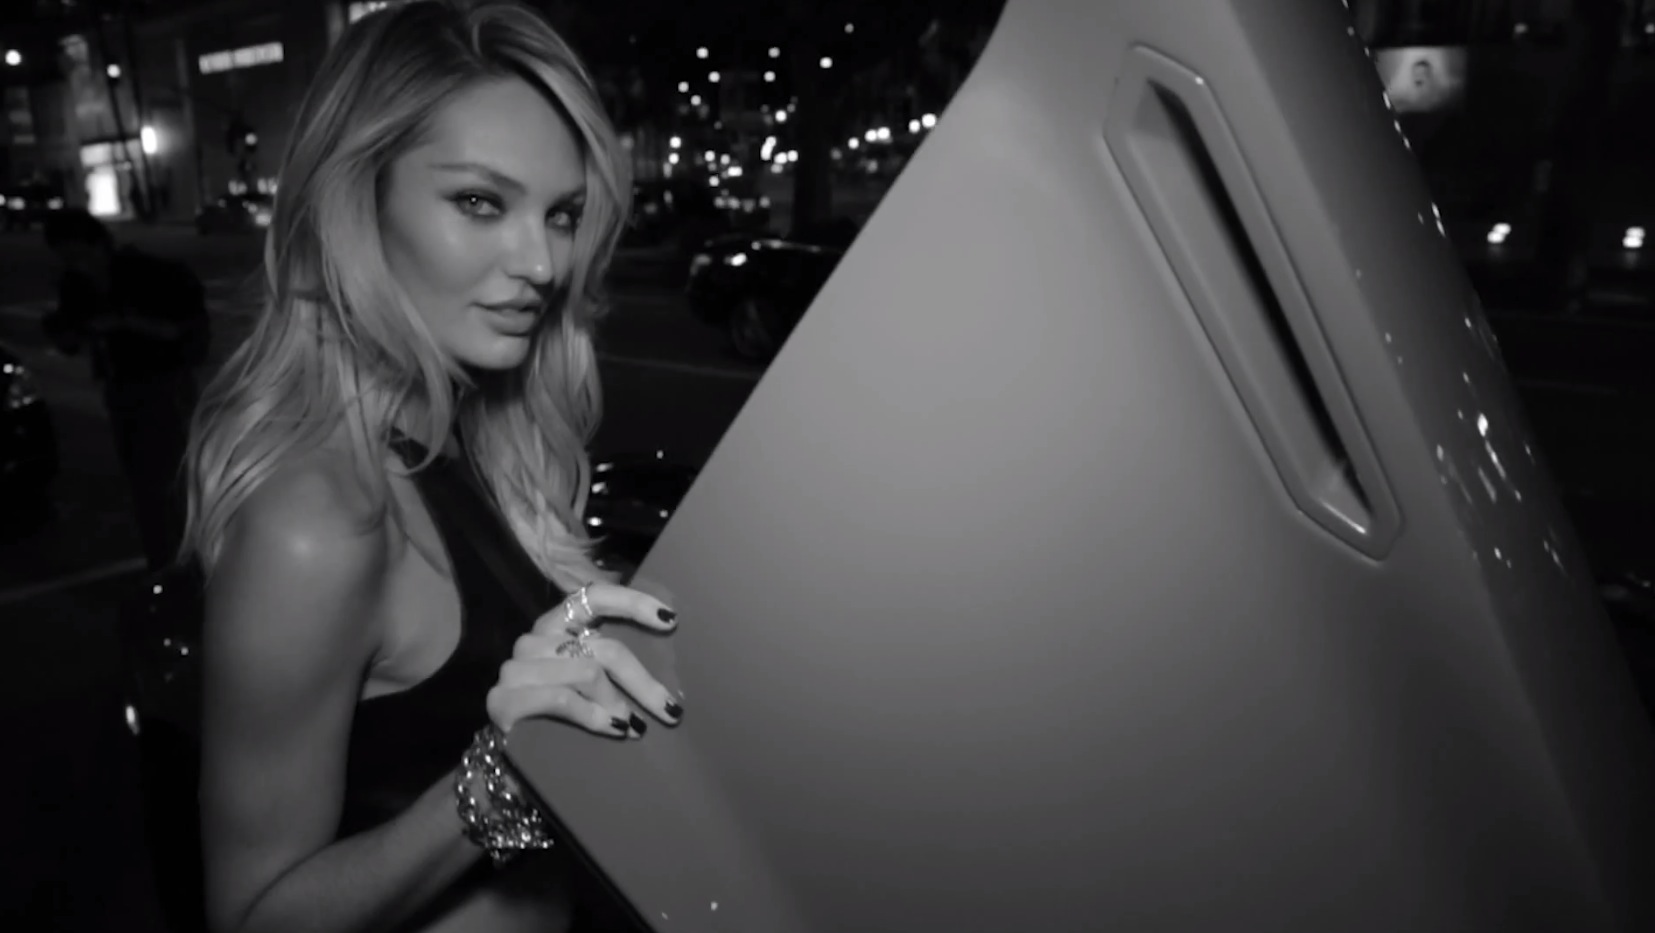 candice swanepoel is hot driving in a lamborghini